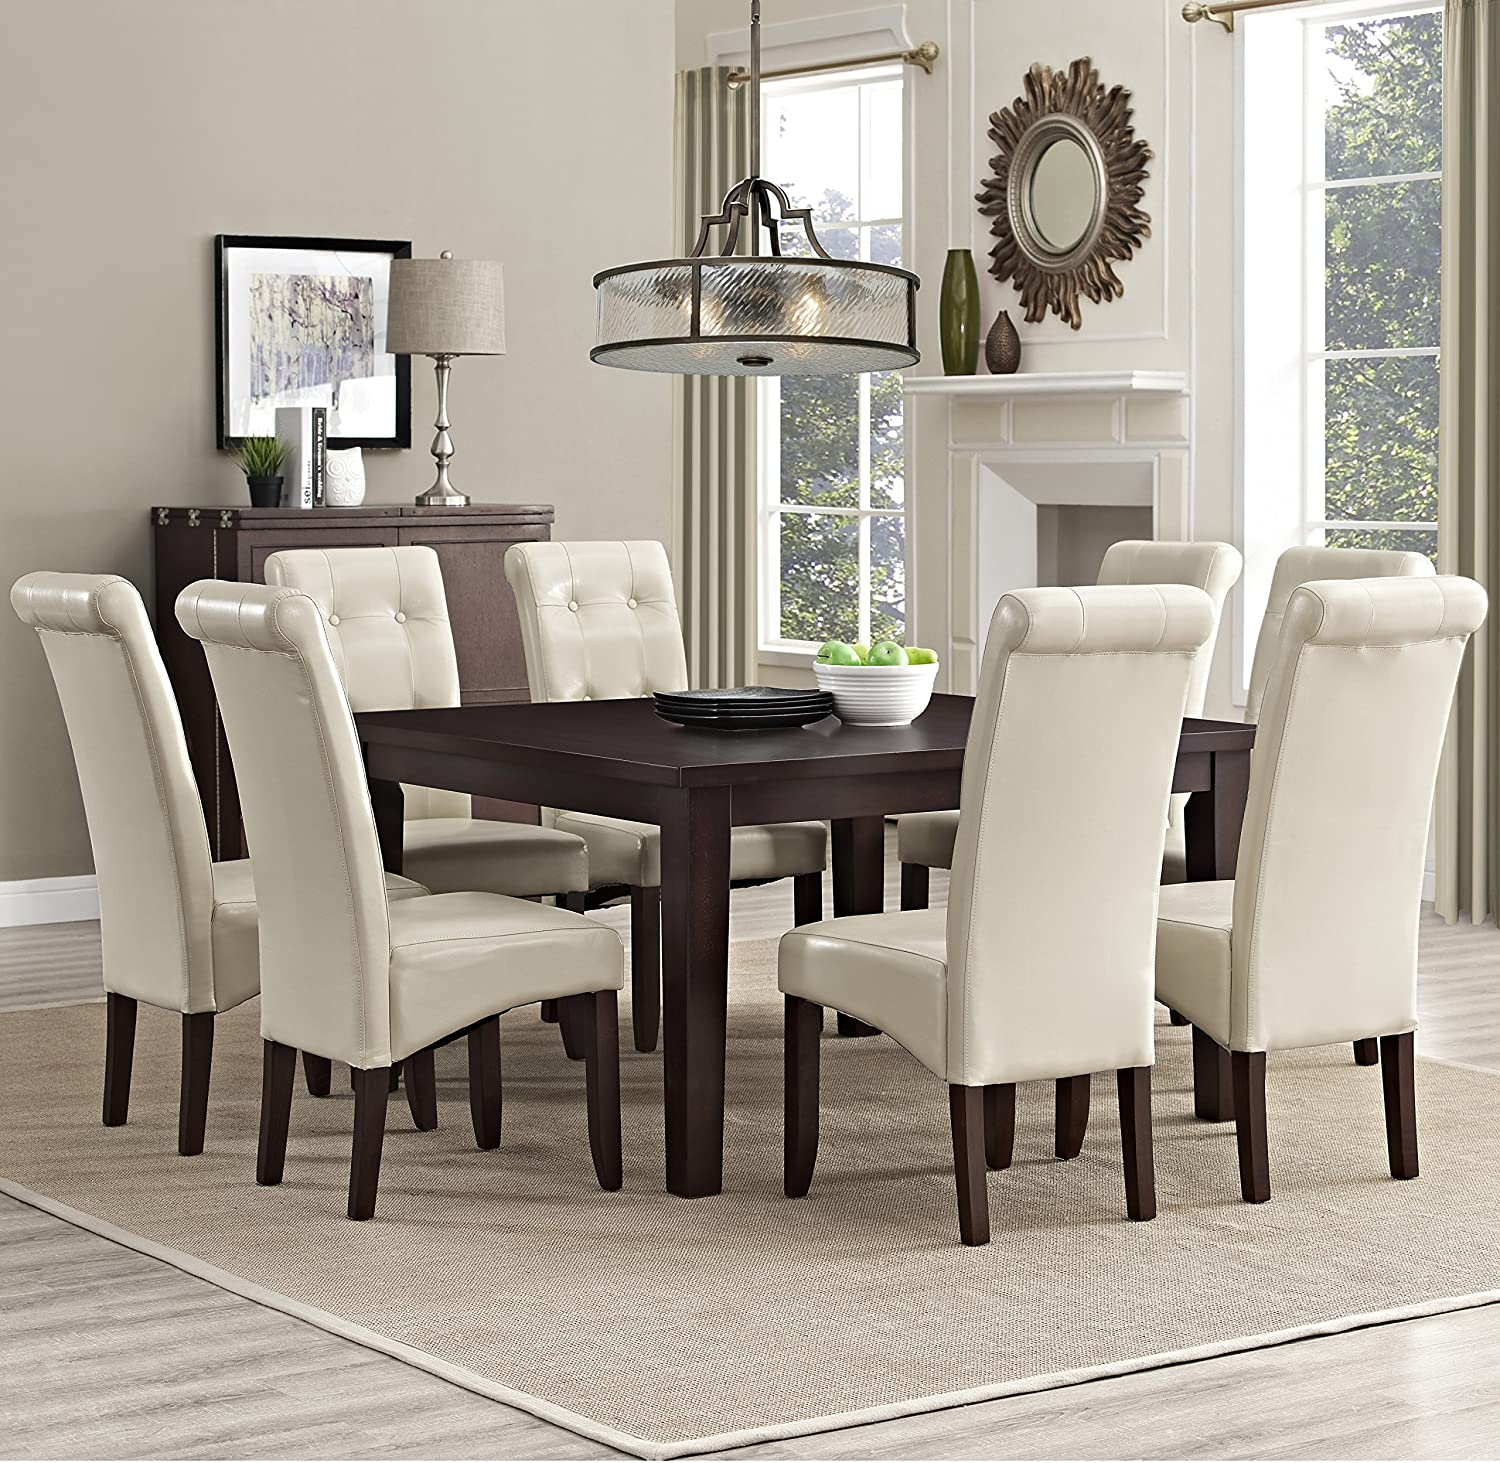 Amazon.com: Simpli Home Cosmopolitan 9 Piece Dining Set, Satin Cream:  Kitchen U0026 Dining